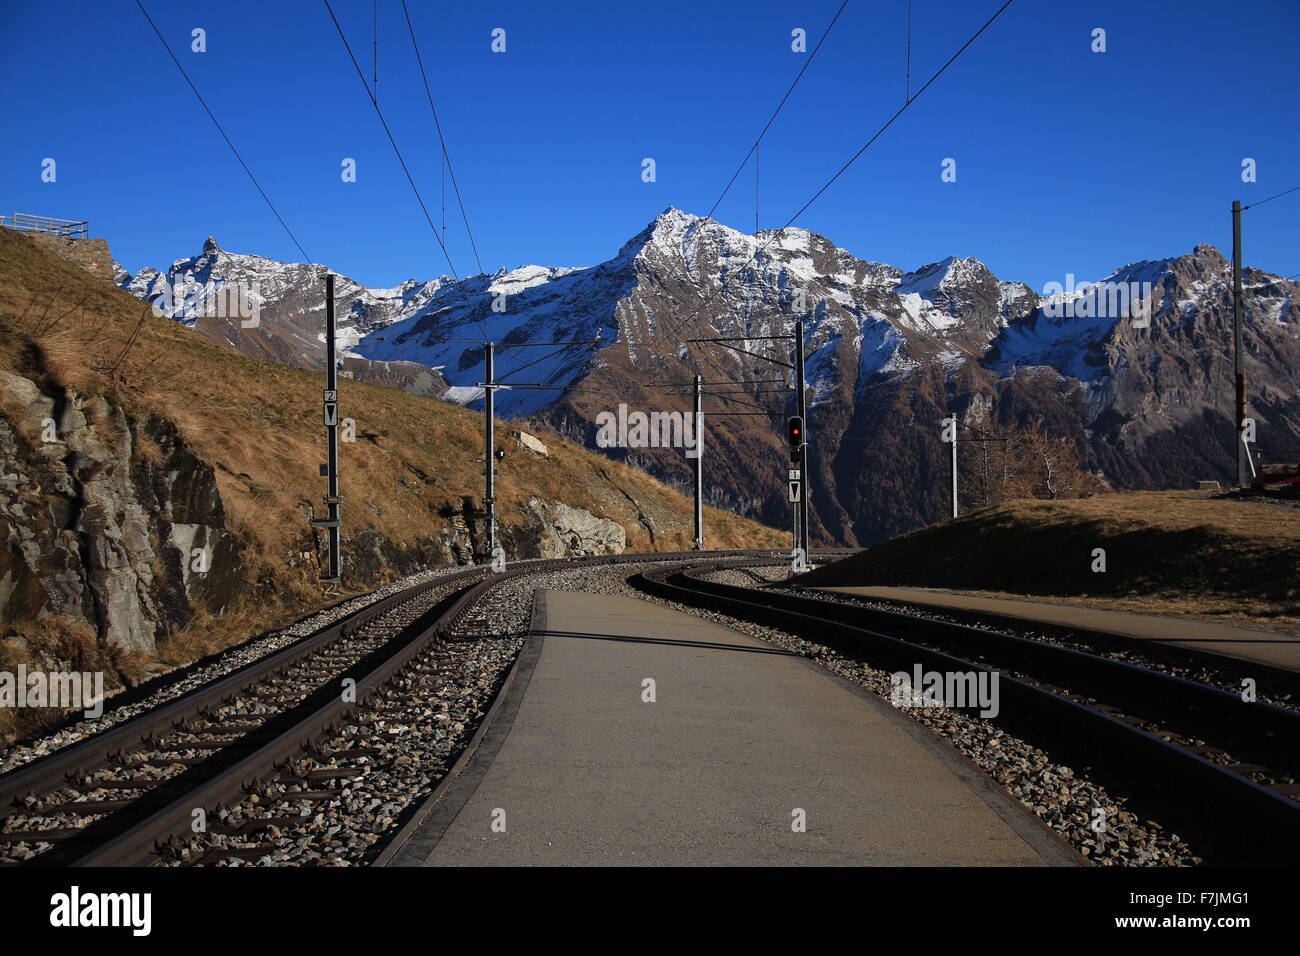 View from Alp Grum, curved track of the Bernina railway - Stock Image